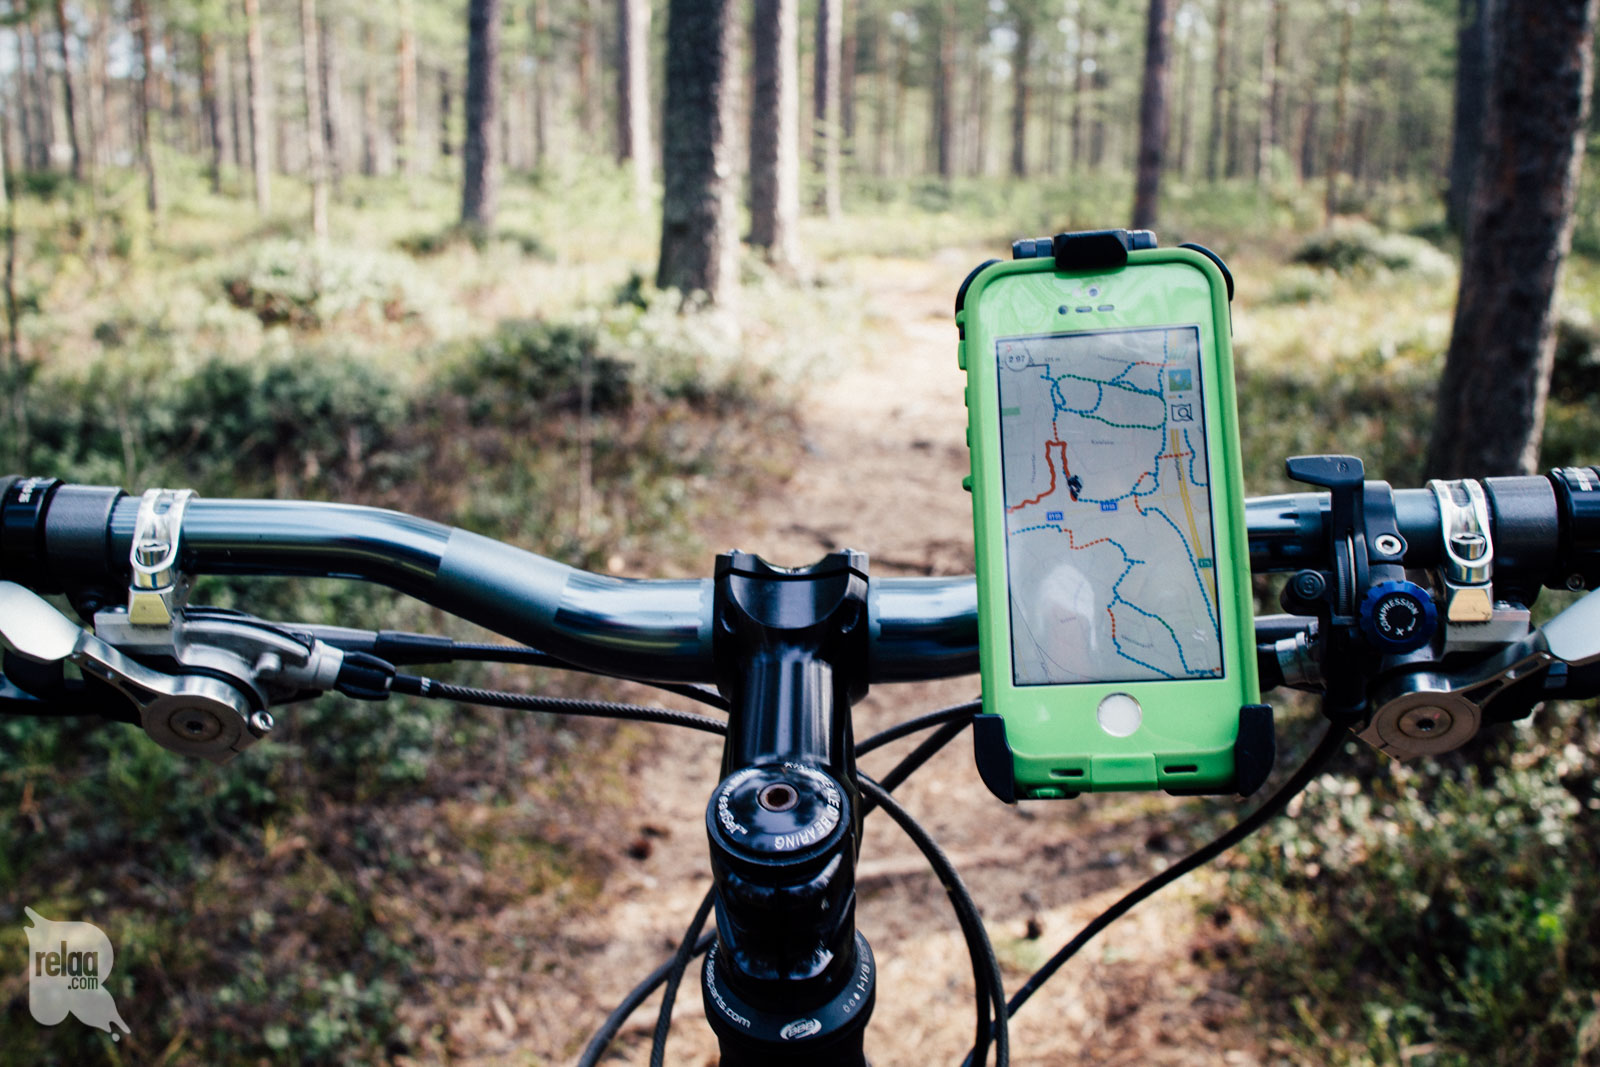 Detektiv Conan Bettwäsche Home Rewindr Route Planner And Sports Tracker